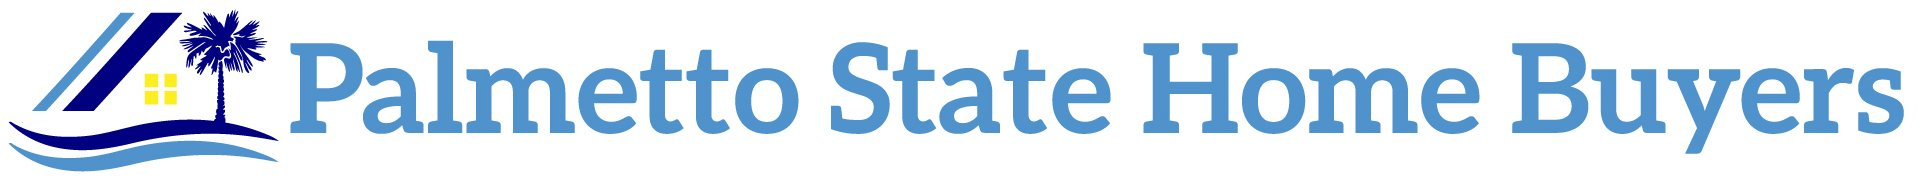 Palmetto State Home Buyers  logo